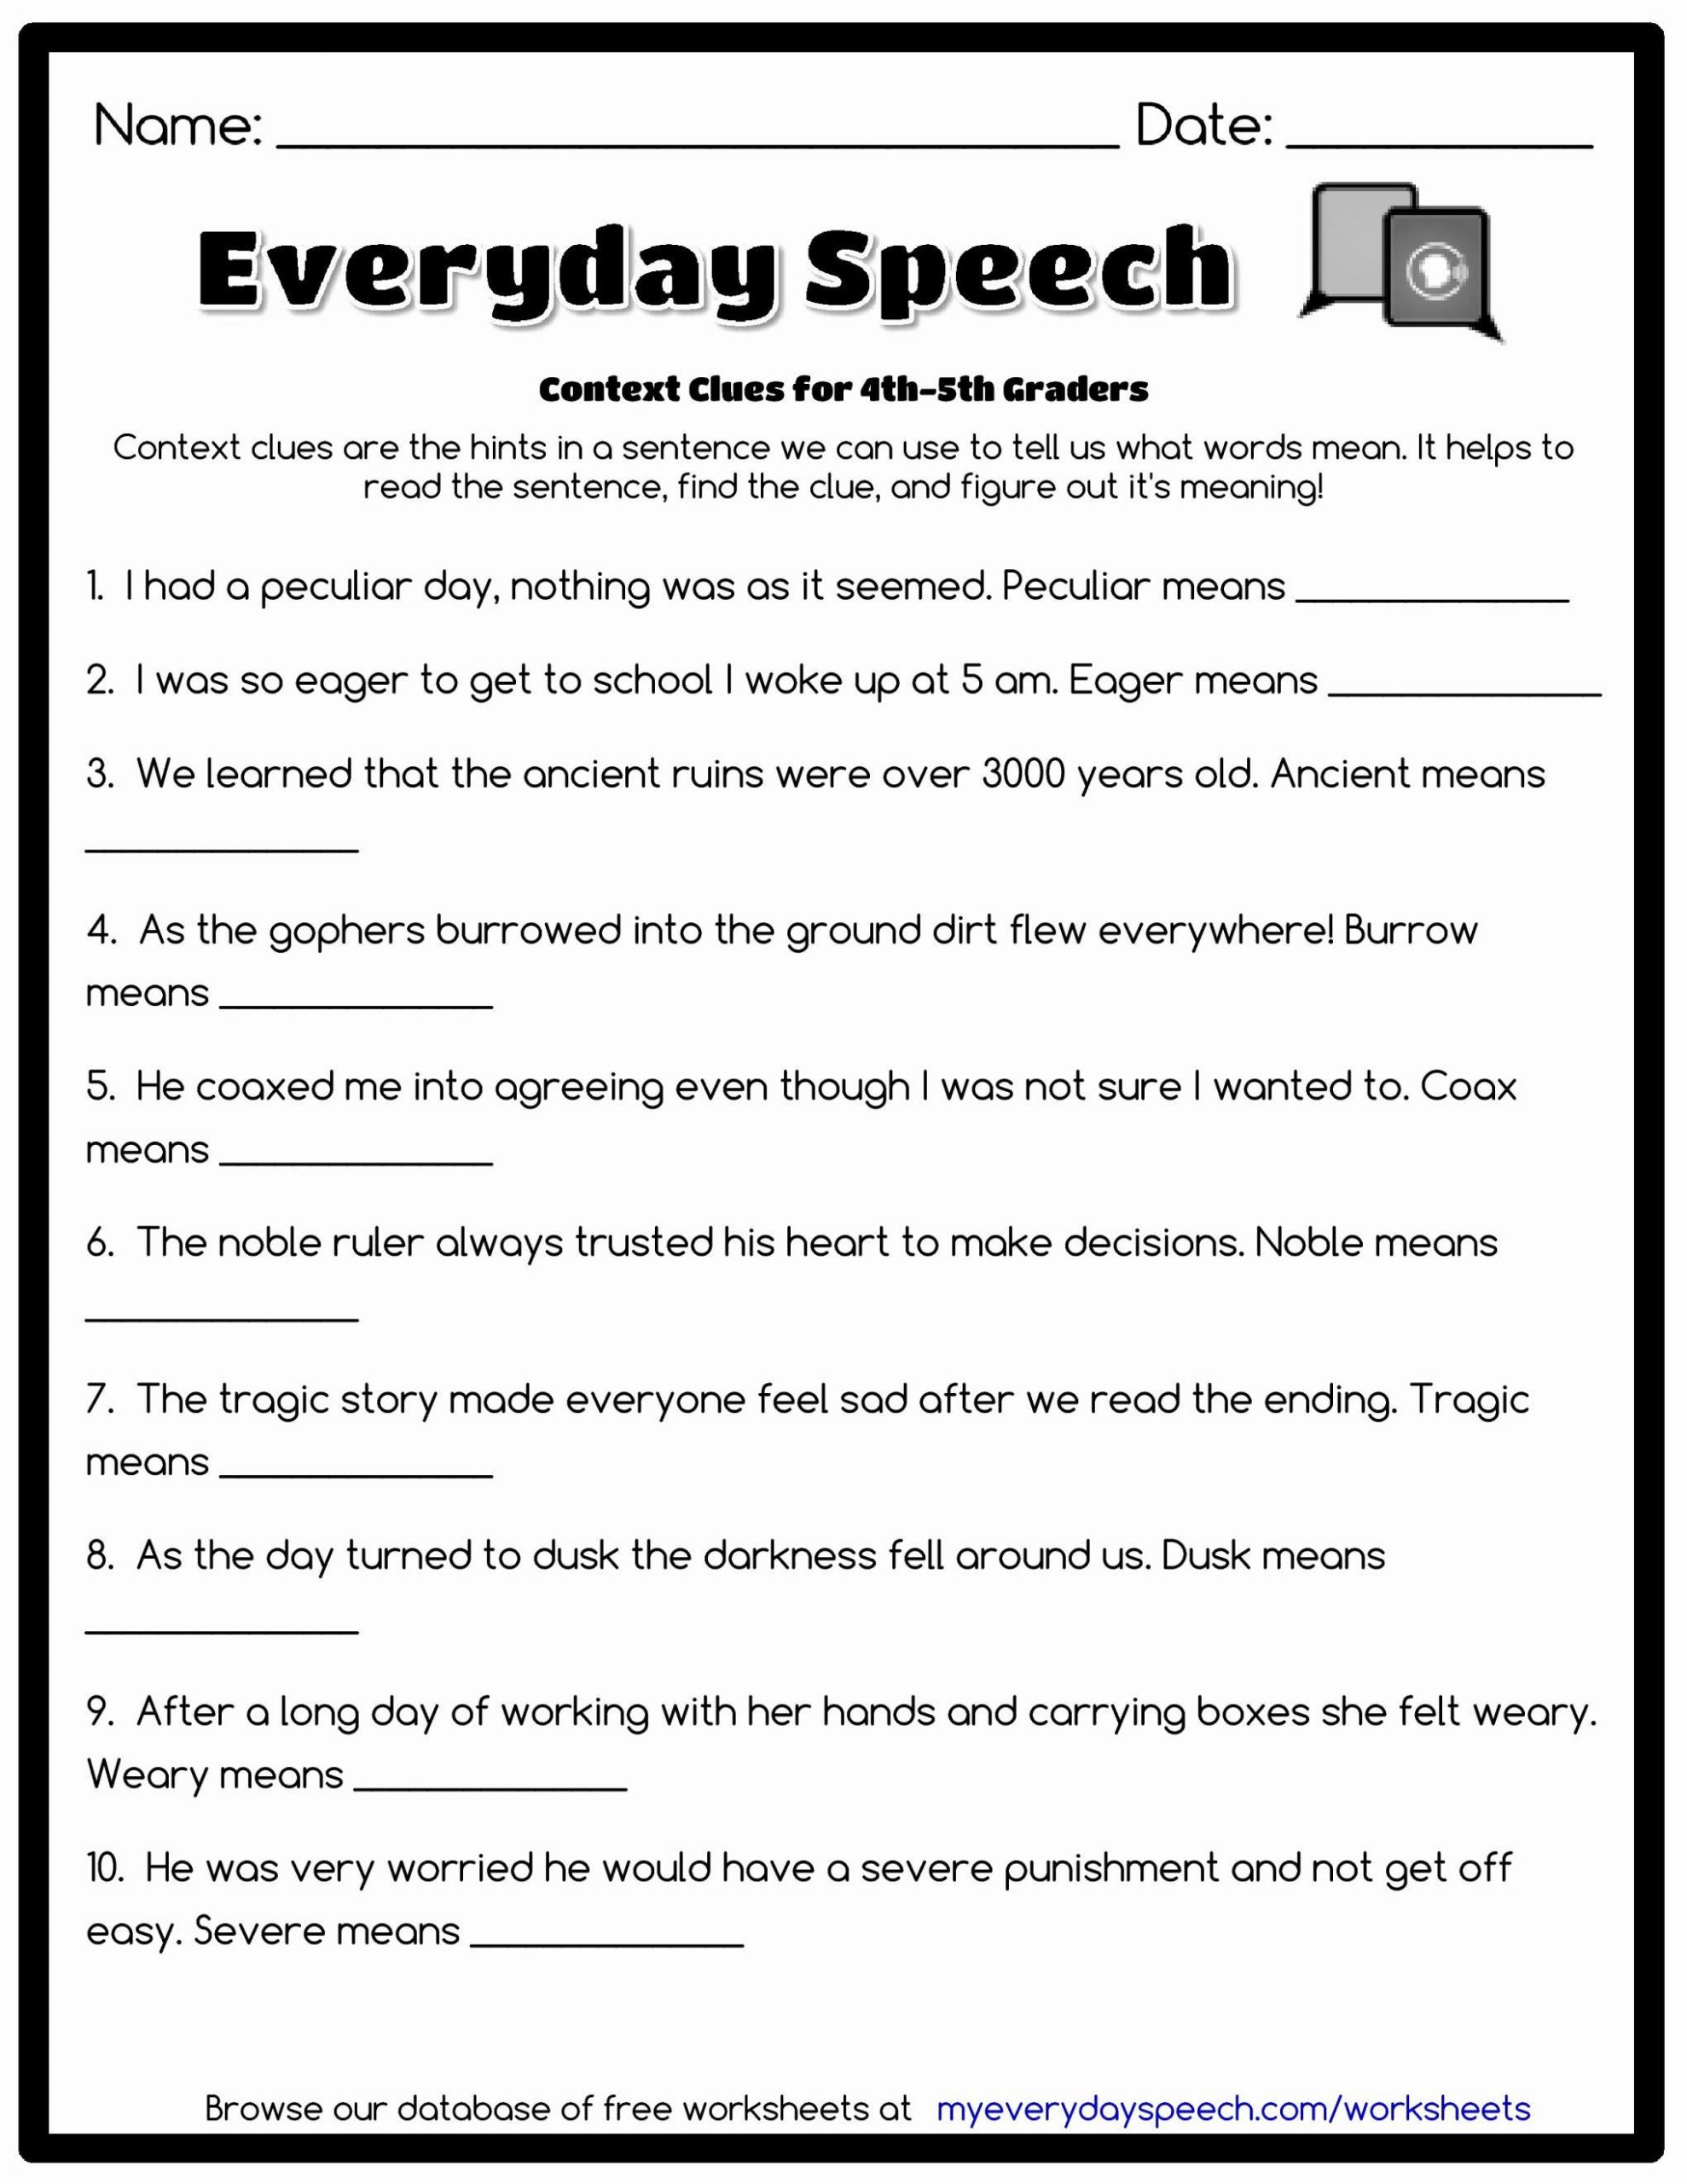 Grammar Worksheet 3rd Grade Grammar Worksheet 3rd Grade